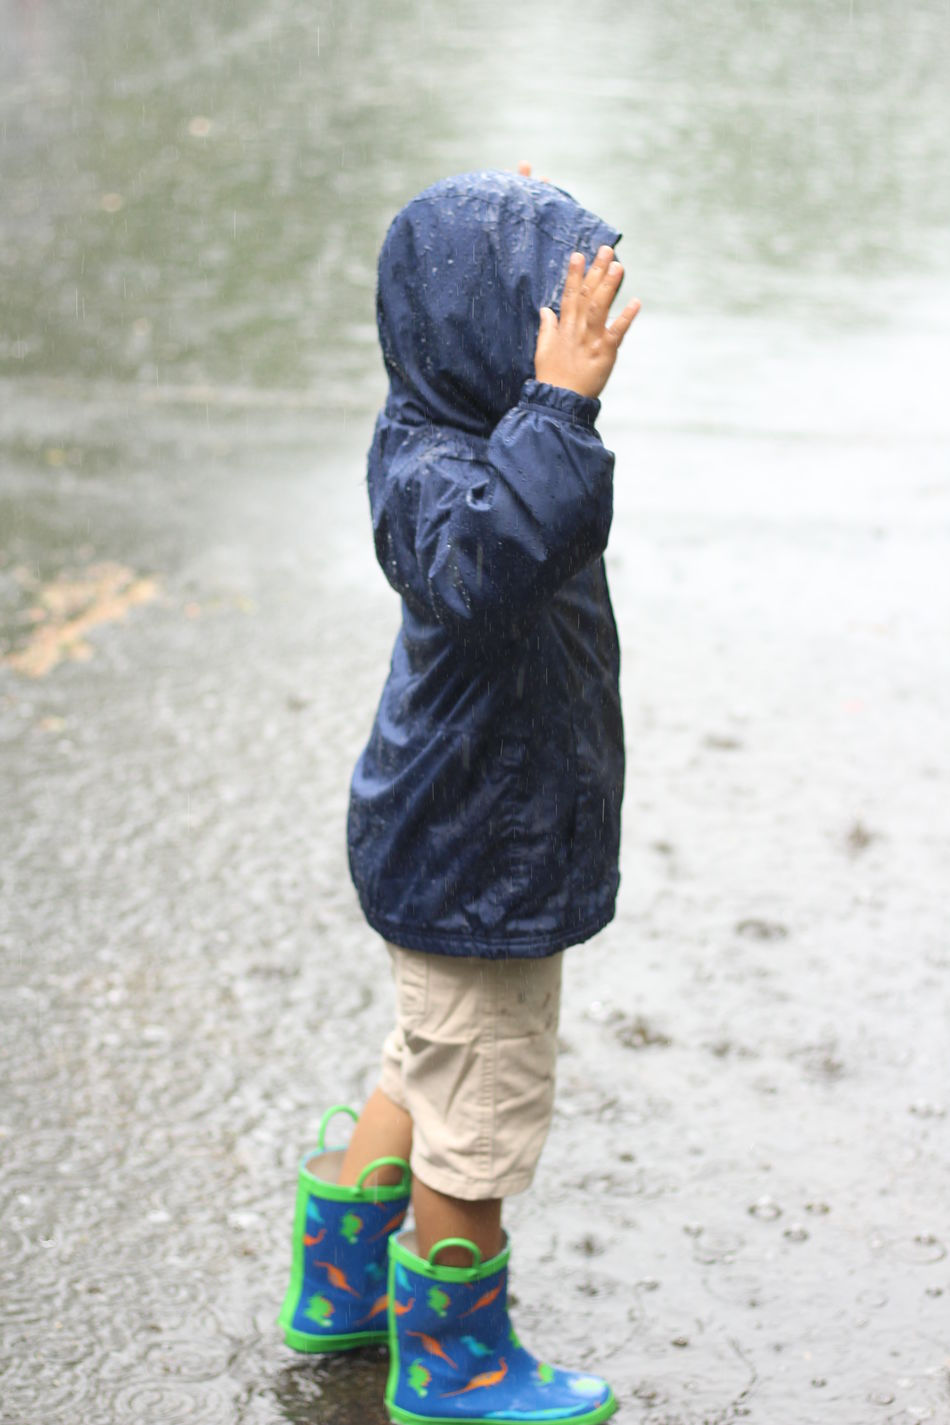 Boys Childhood Day Full Length Hooded Shirt Leisure Activity Lifestyles One Person Outdoors People Real People Rear View Standing Warm Clothing